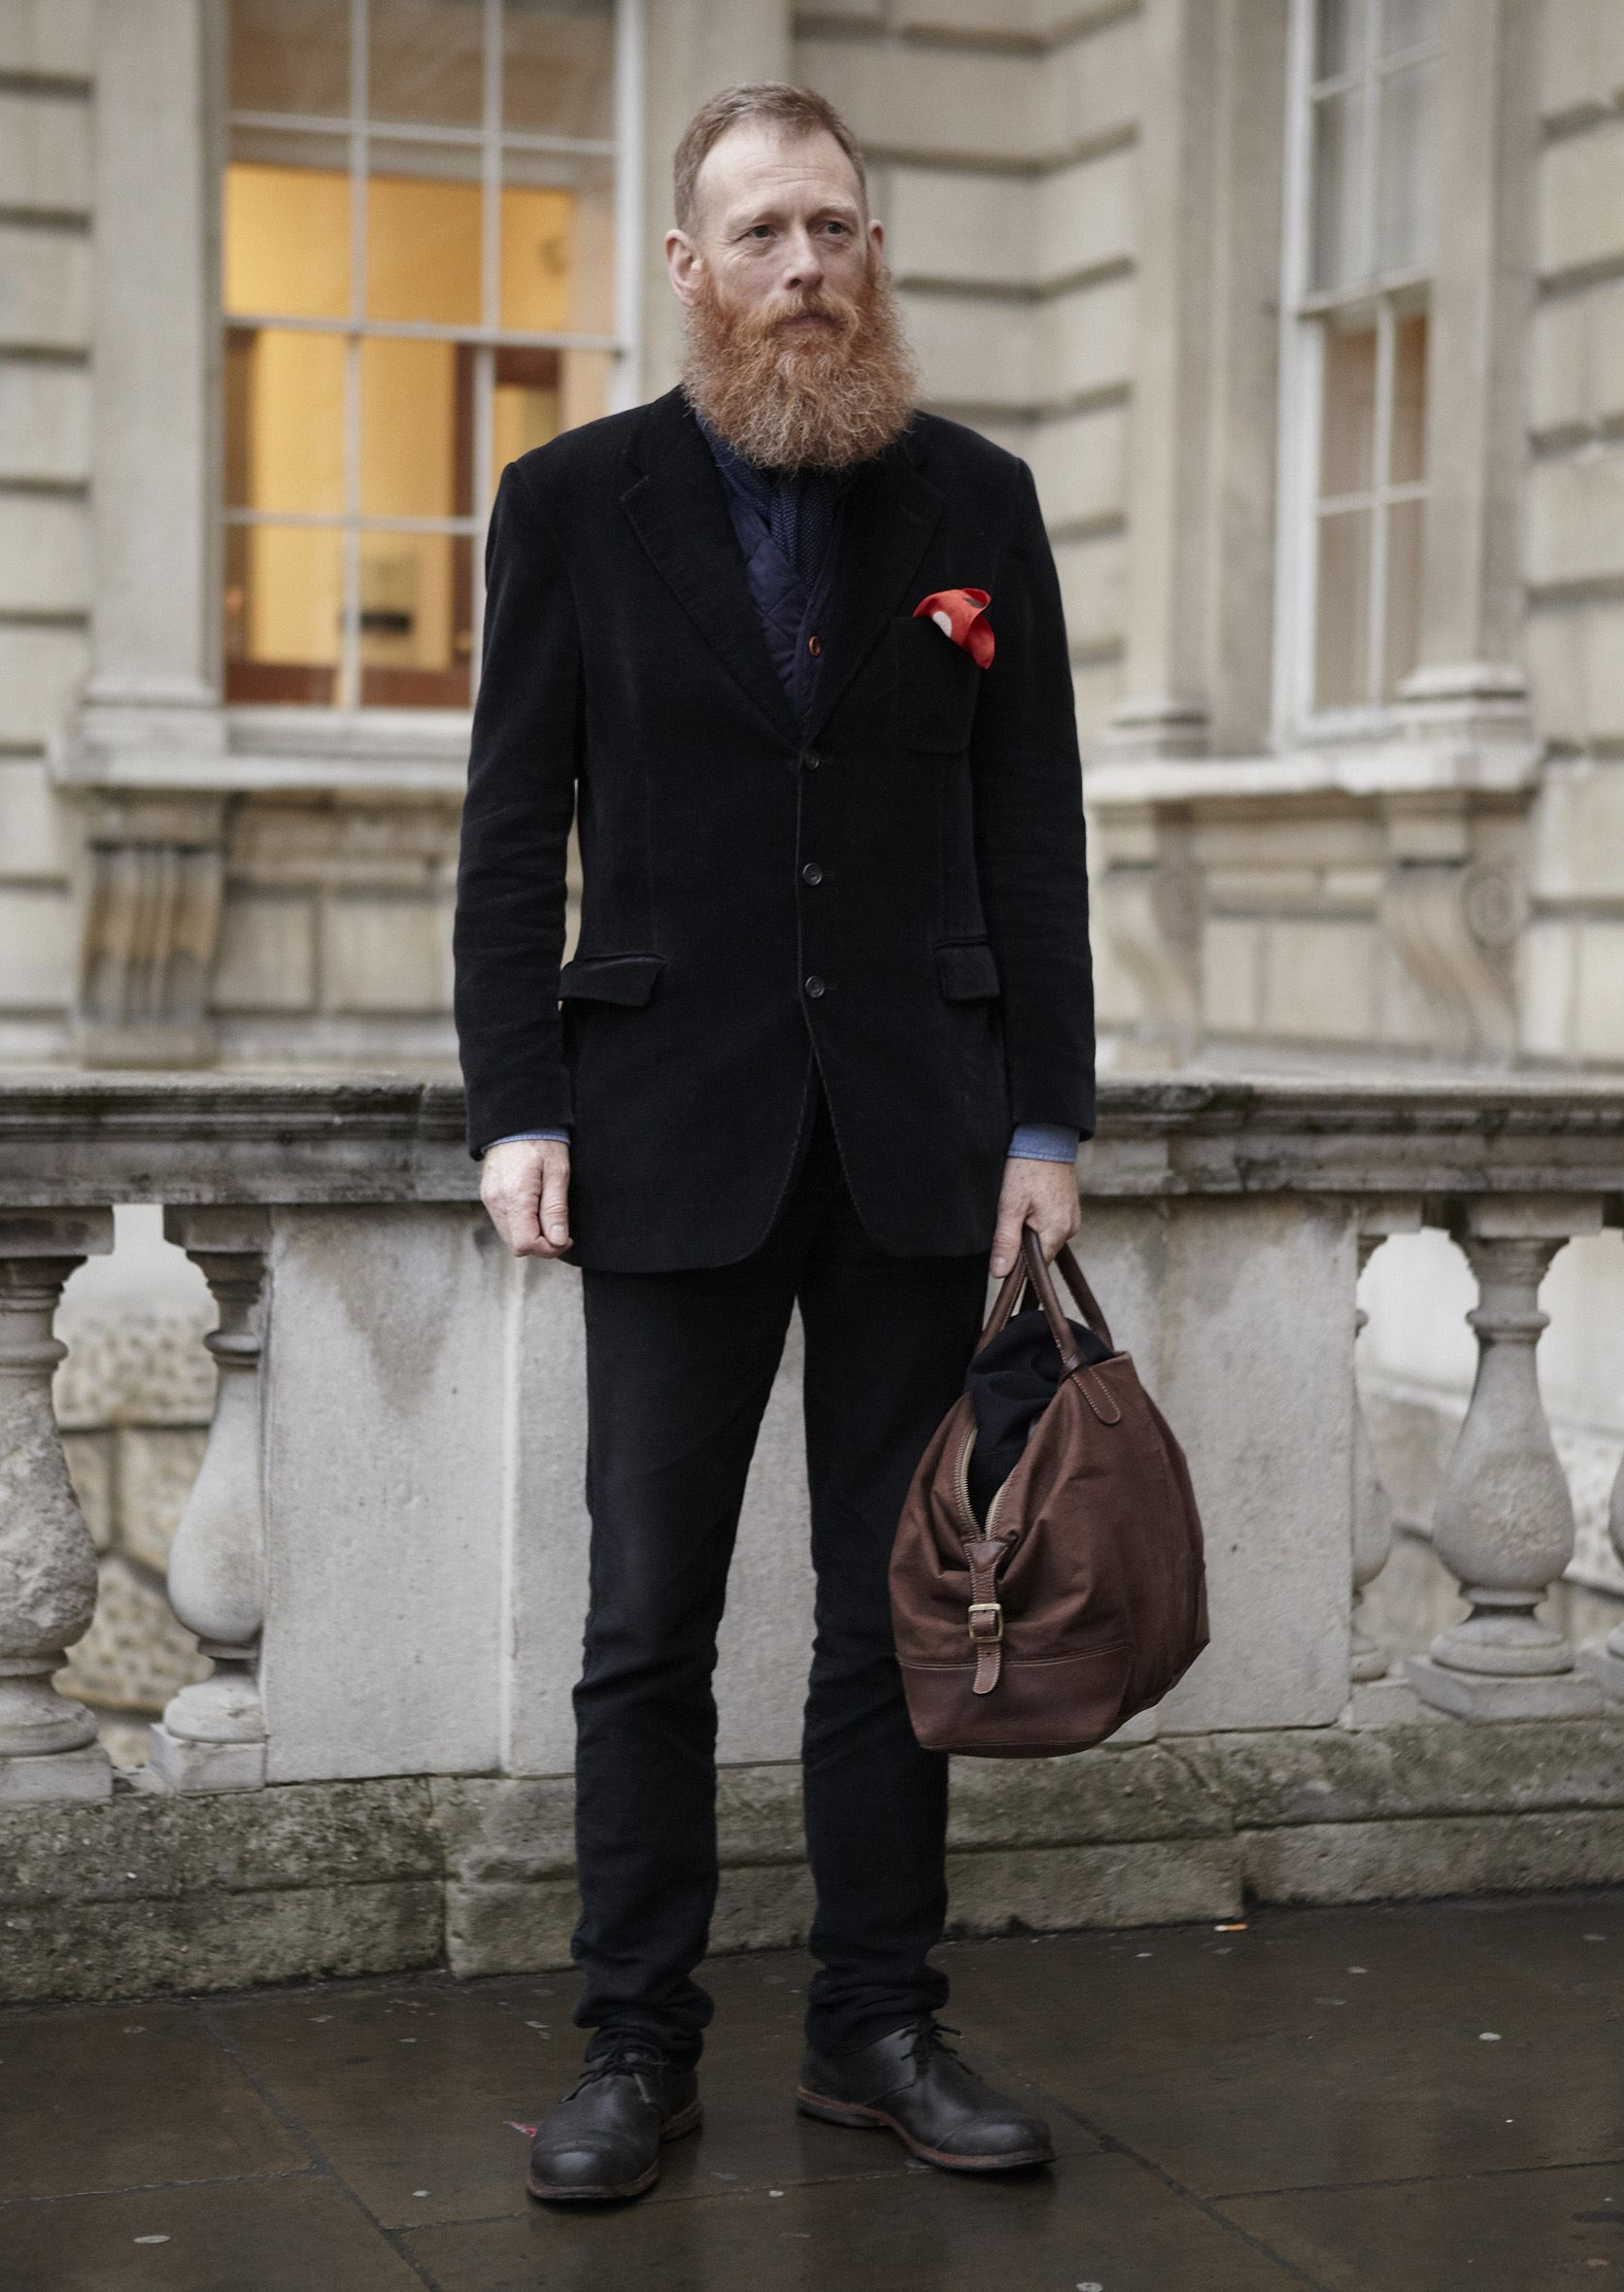 #LFW  #Men #Streetstyle Photographer: Tomas Hein